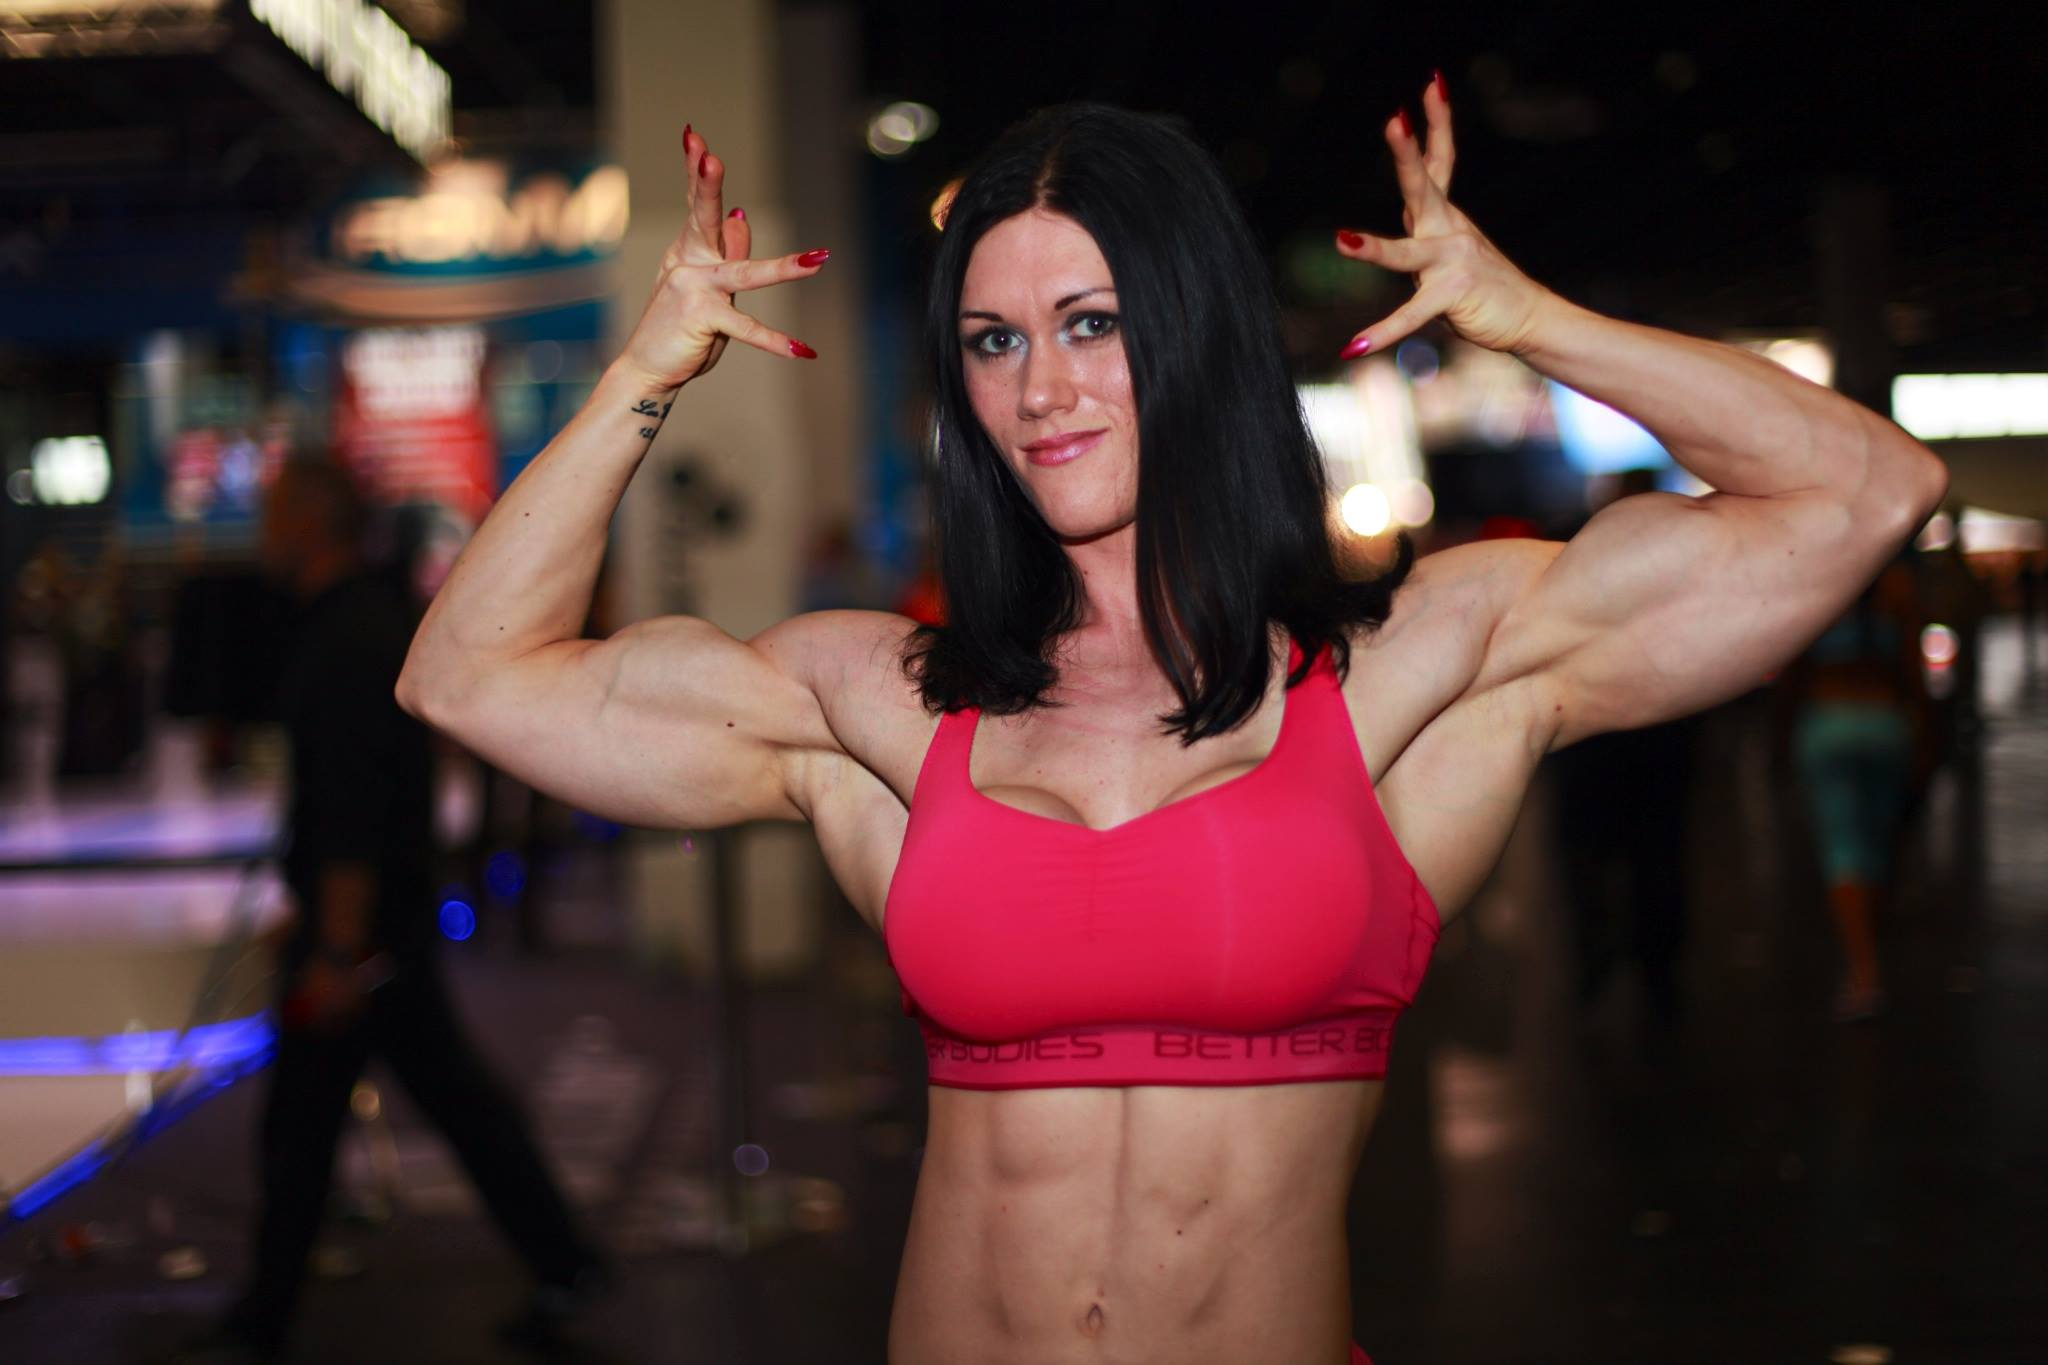 Female bodybuilder jill jaxen gets naked 5